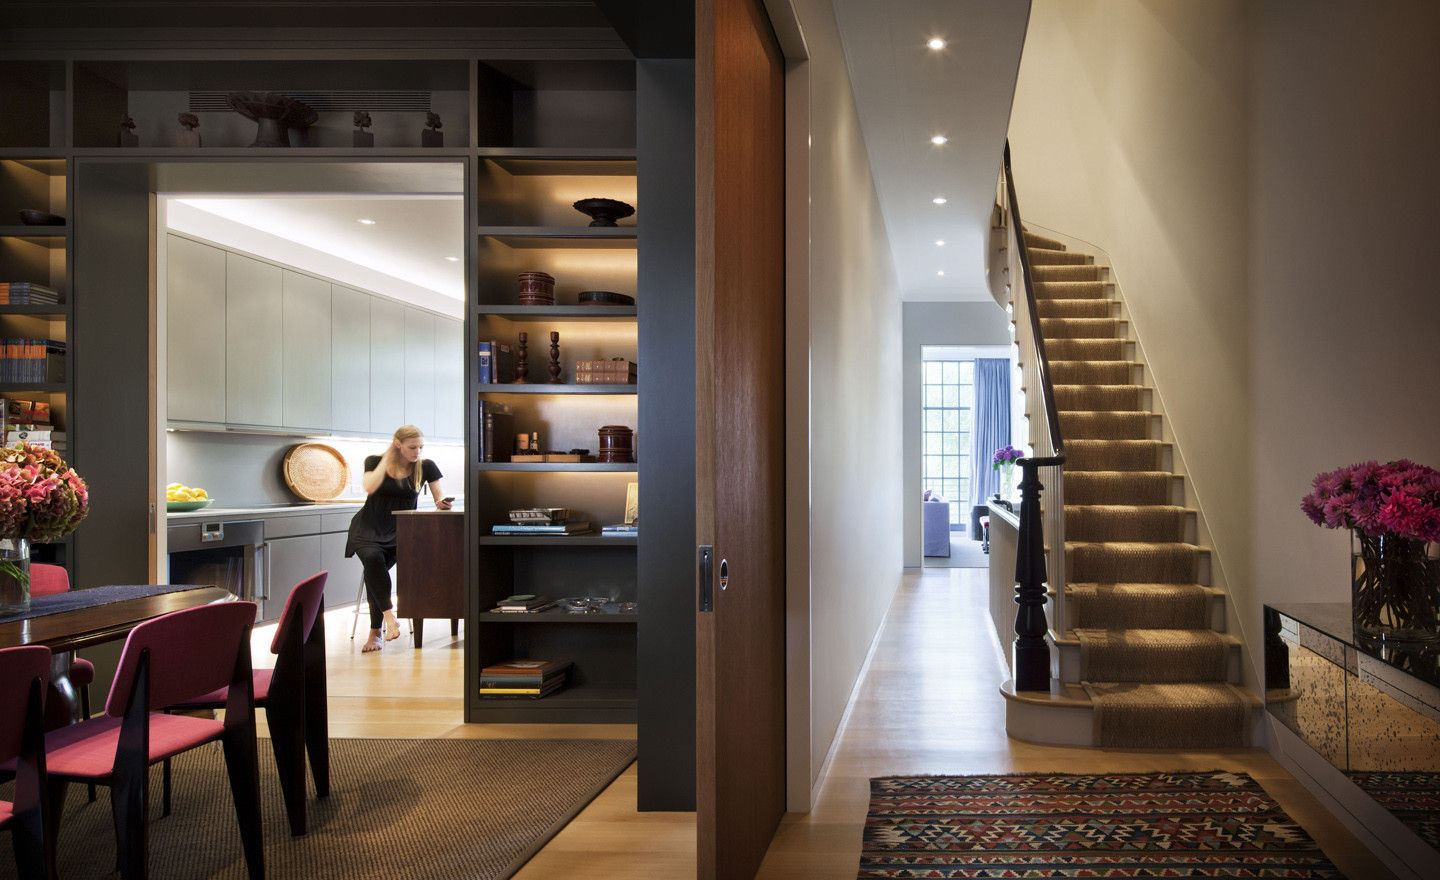 Spotlights For Narrow Foyer Next To Stairs? Rees Roberts + Partners LLC    Horatio Street